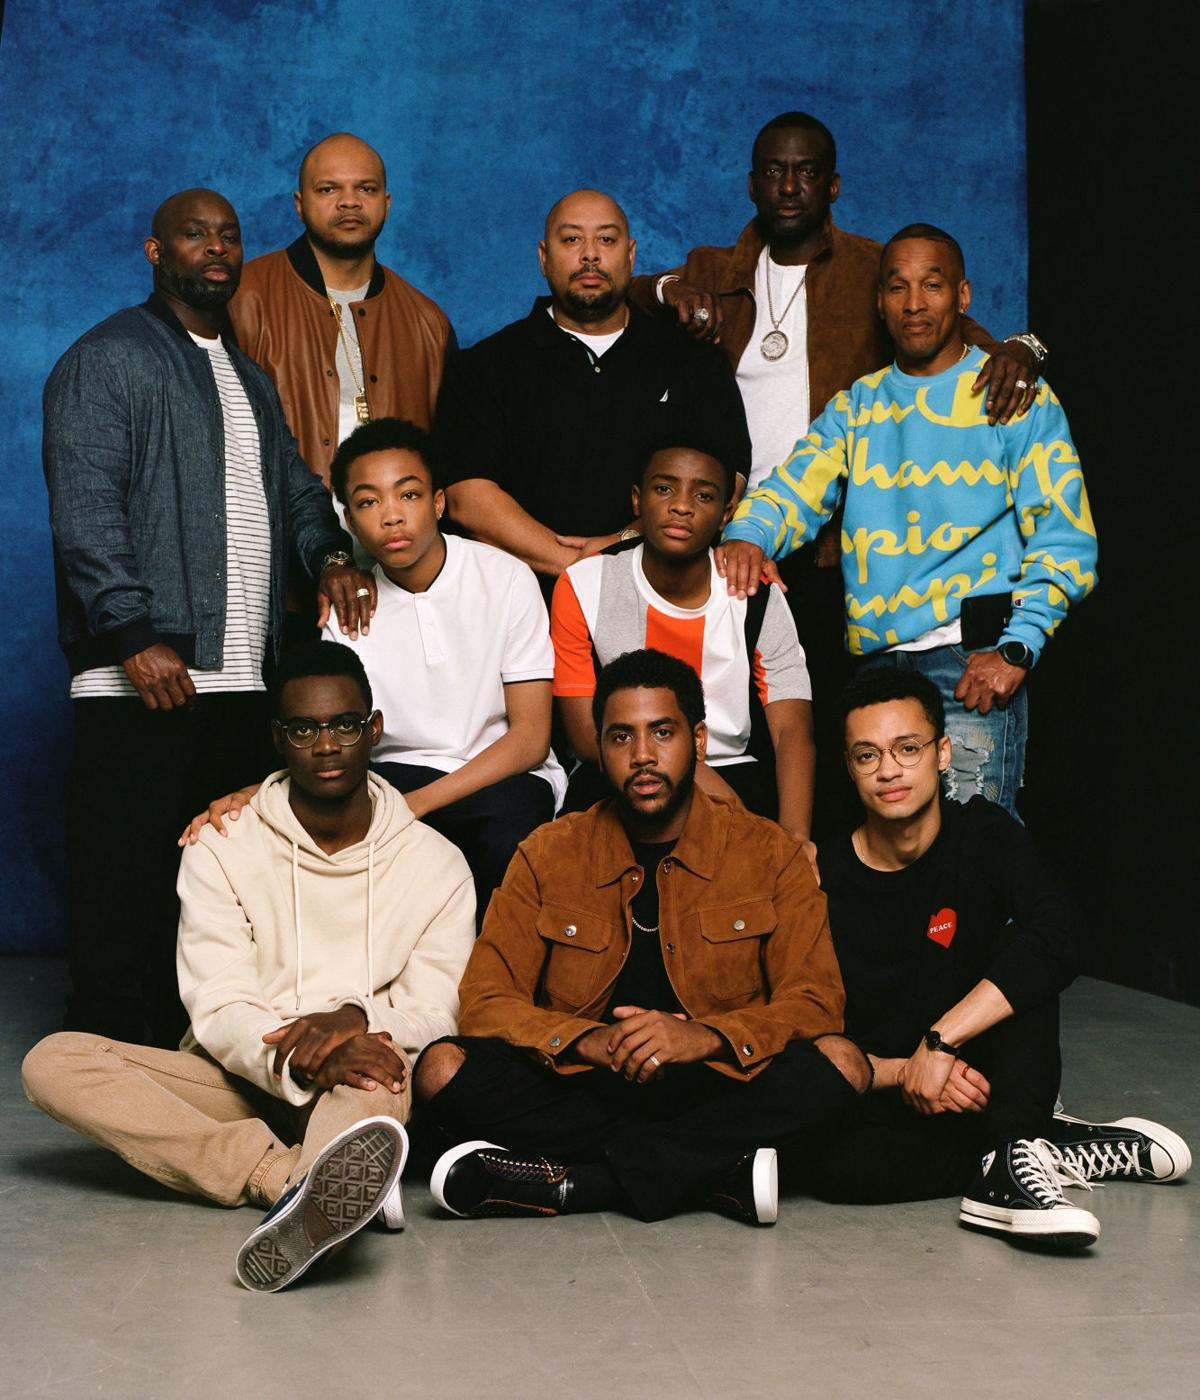 'When They See Us' - Actors with real Central Park 5 - Exonerated 5